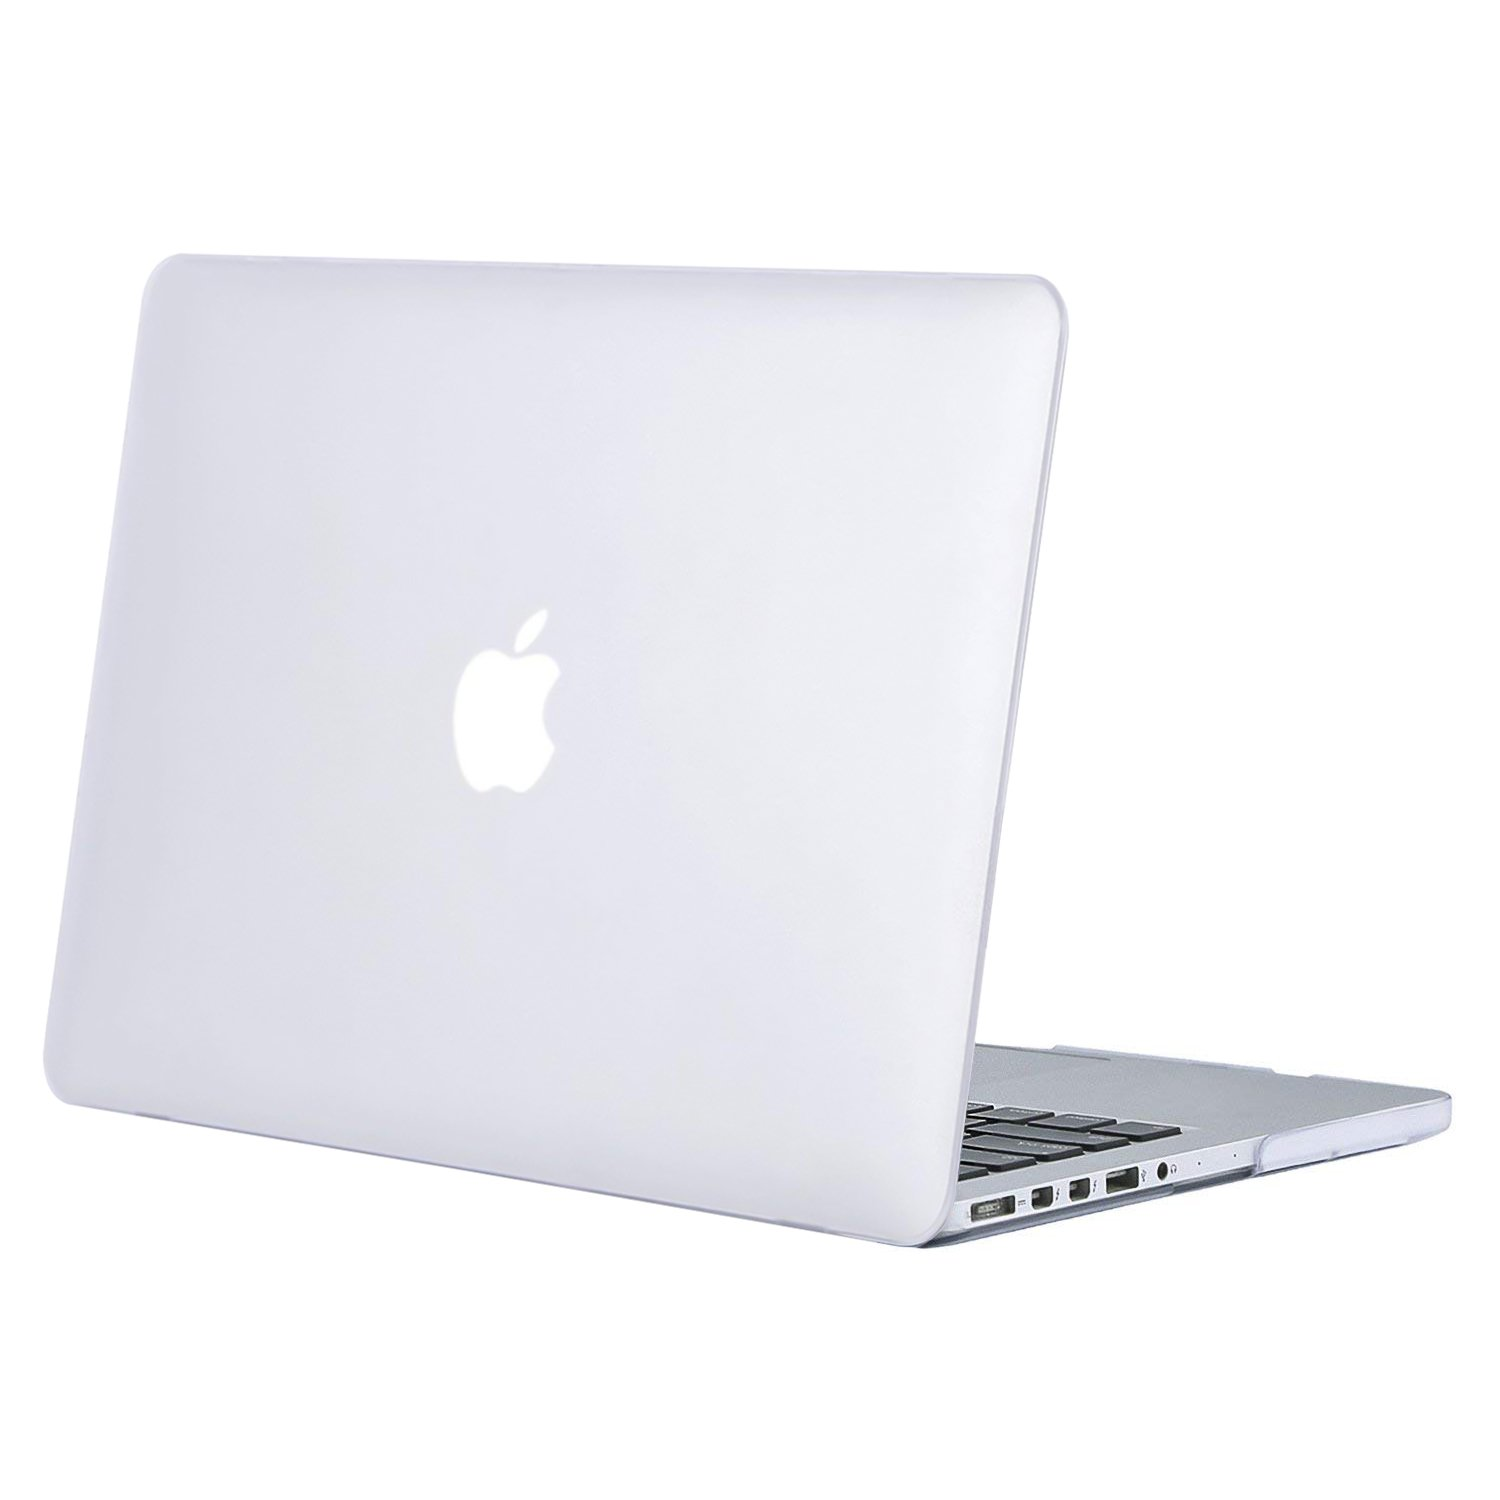 buy online d17f2 193b5 MOSISO Plastic Hard Shell Case Cover Only Compatible Older Version MacBook  Pro Retina 13 Inch (Model: A1502 & A1425) (Release 2015 - end 2012), Frost